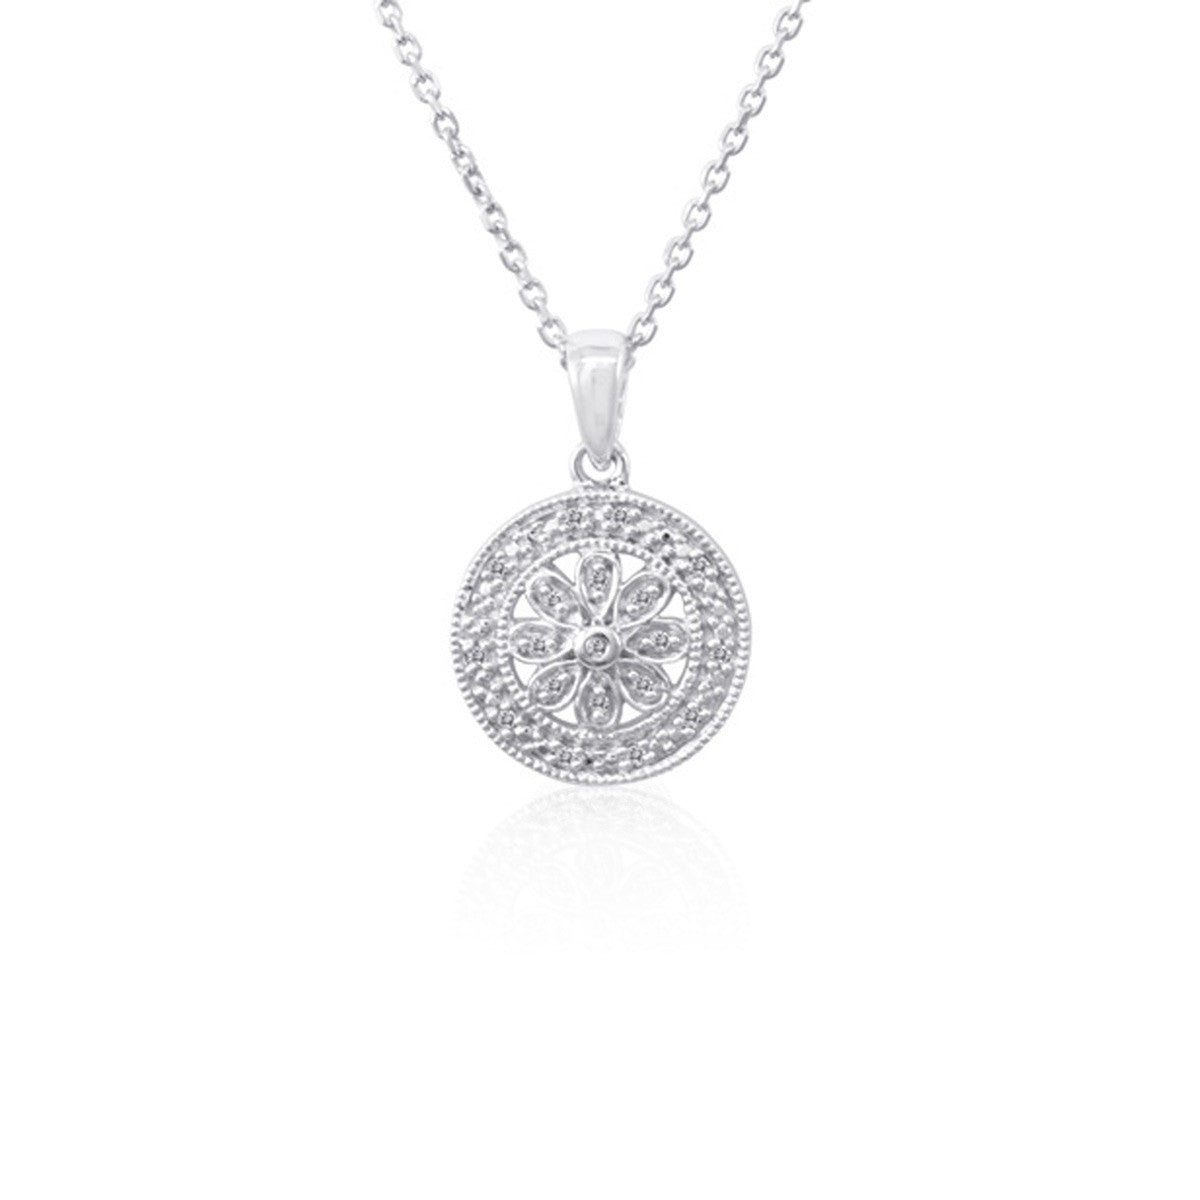 Bling round diamond filigree pendant at desires by mikolay diamond round filigree pendant necklace in sterling silver aloadofball Choice Image